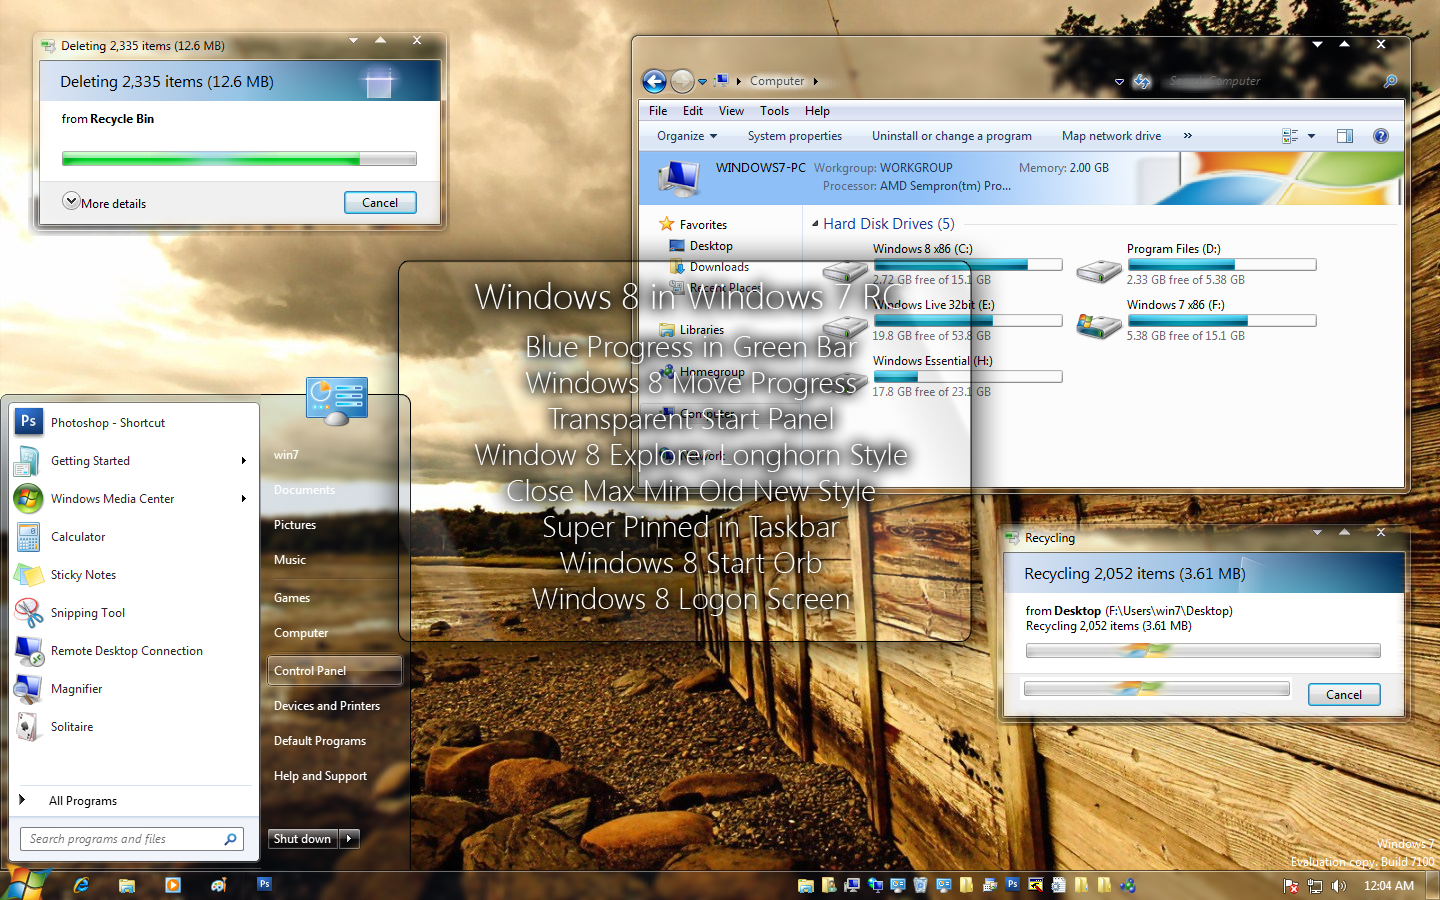 [HF] Windows 7 themes collection [2010]